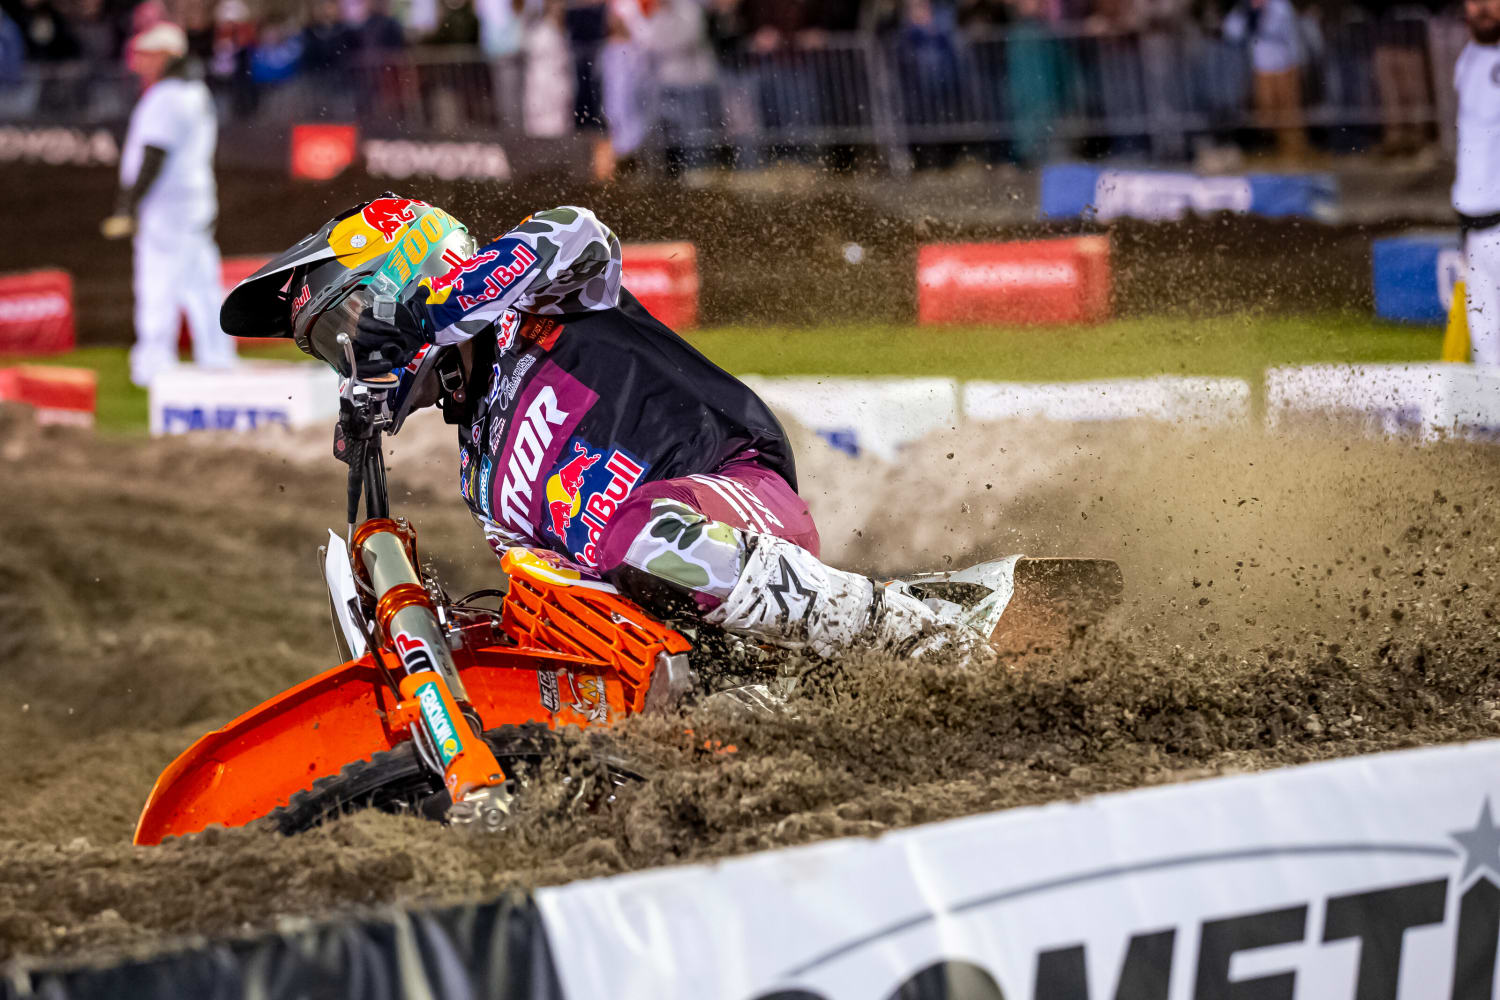 The Best 22 Ama Supercross Champions Of All Time